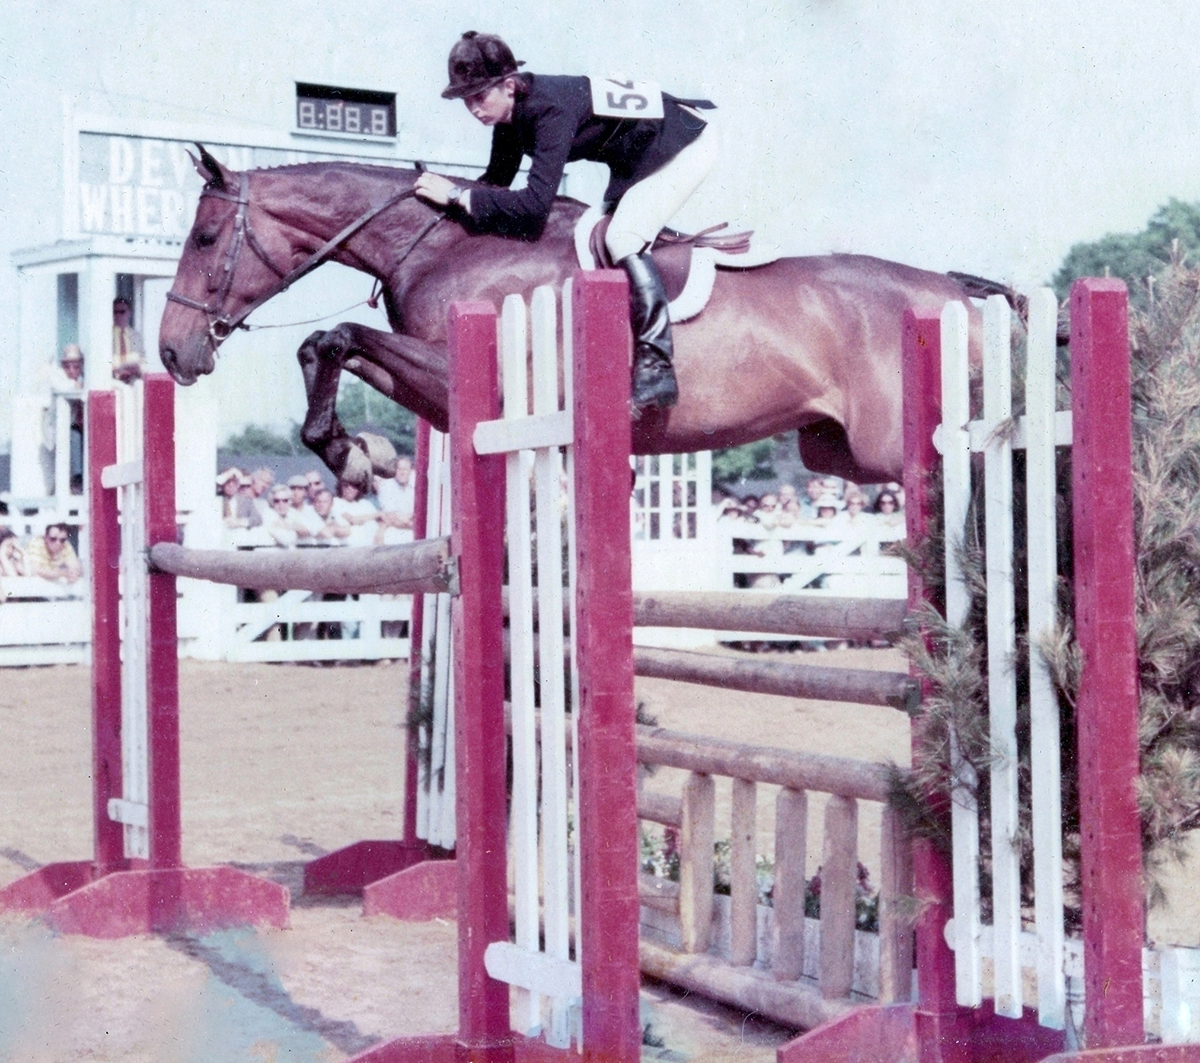 Sign The Card with Jane Womble (now Gaston up) - Regular Working Hunter Champion at Devon in 1972. Photo by Freudy.